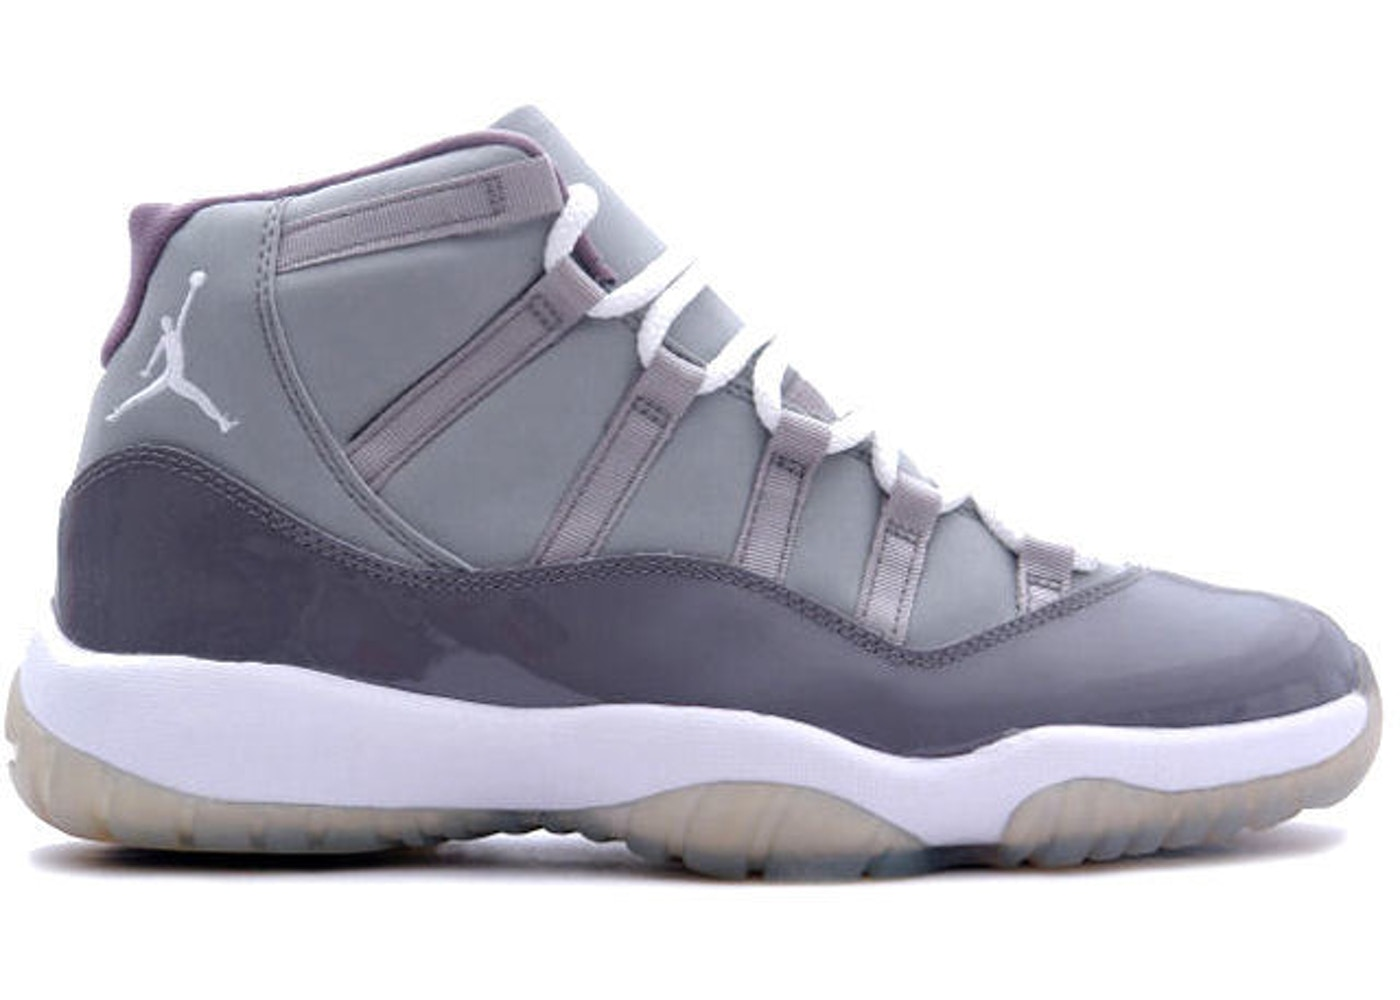 57e817c996e2 Jordan 11 Retro Cool Grey (2001) - 136046-011